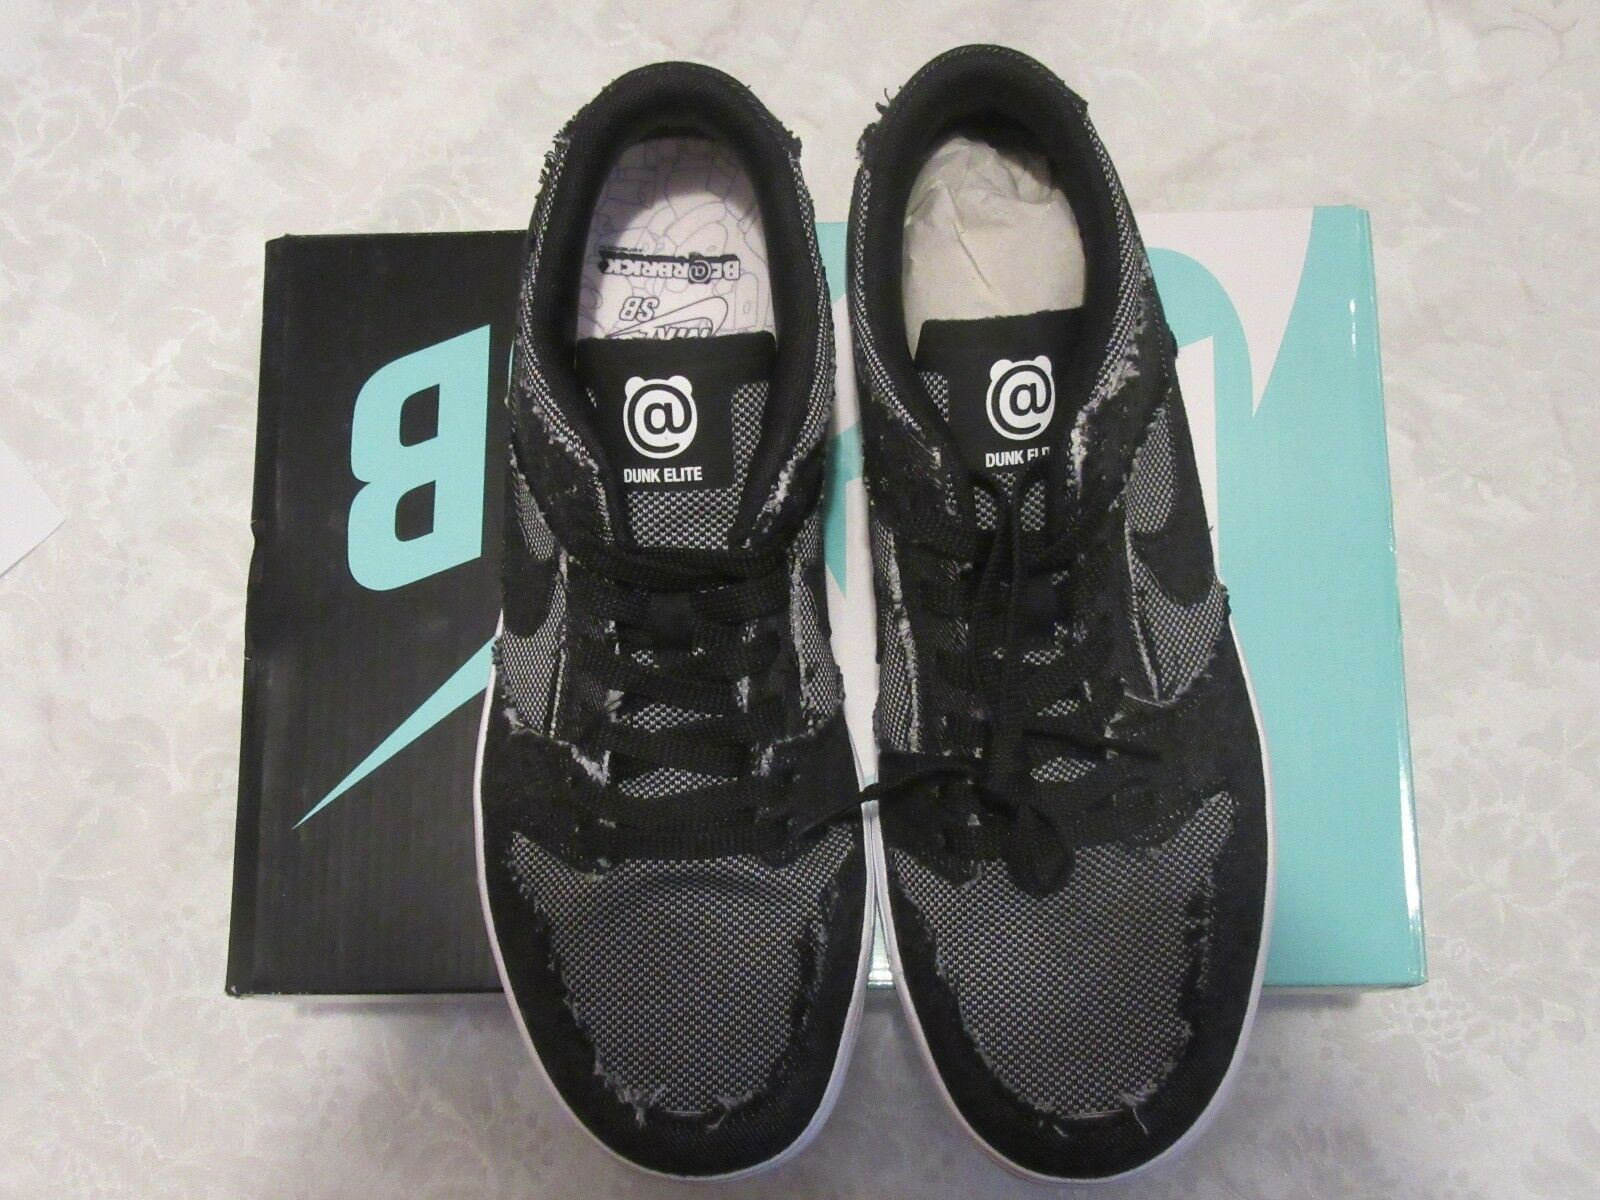 Nike SB Zoom Dunk Low 877063 Elite QS Medicom Be@rbrick 877063 Low 002 Size 11 Sneakers 8cb8b0